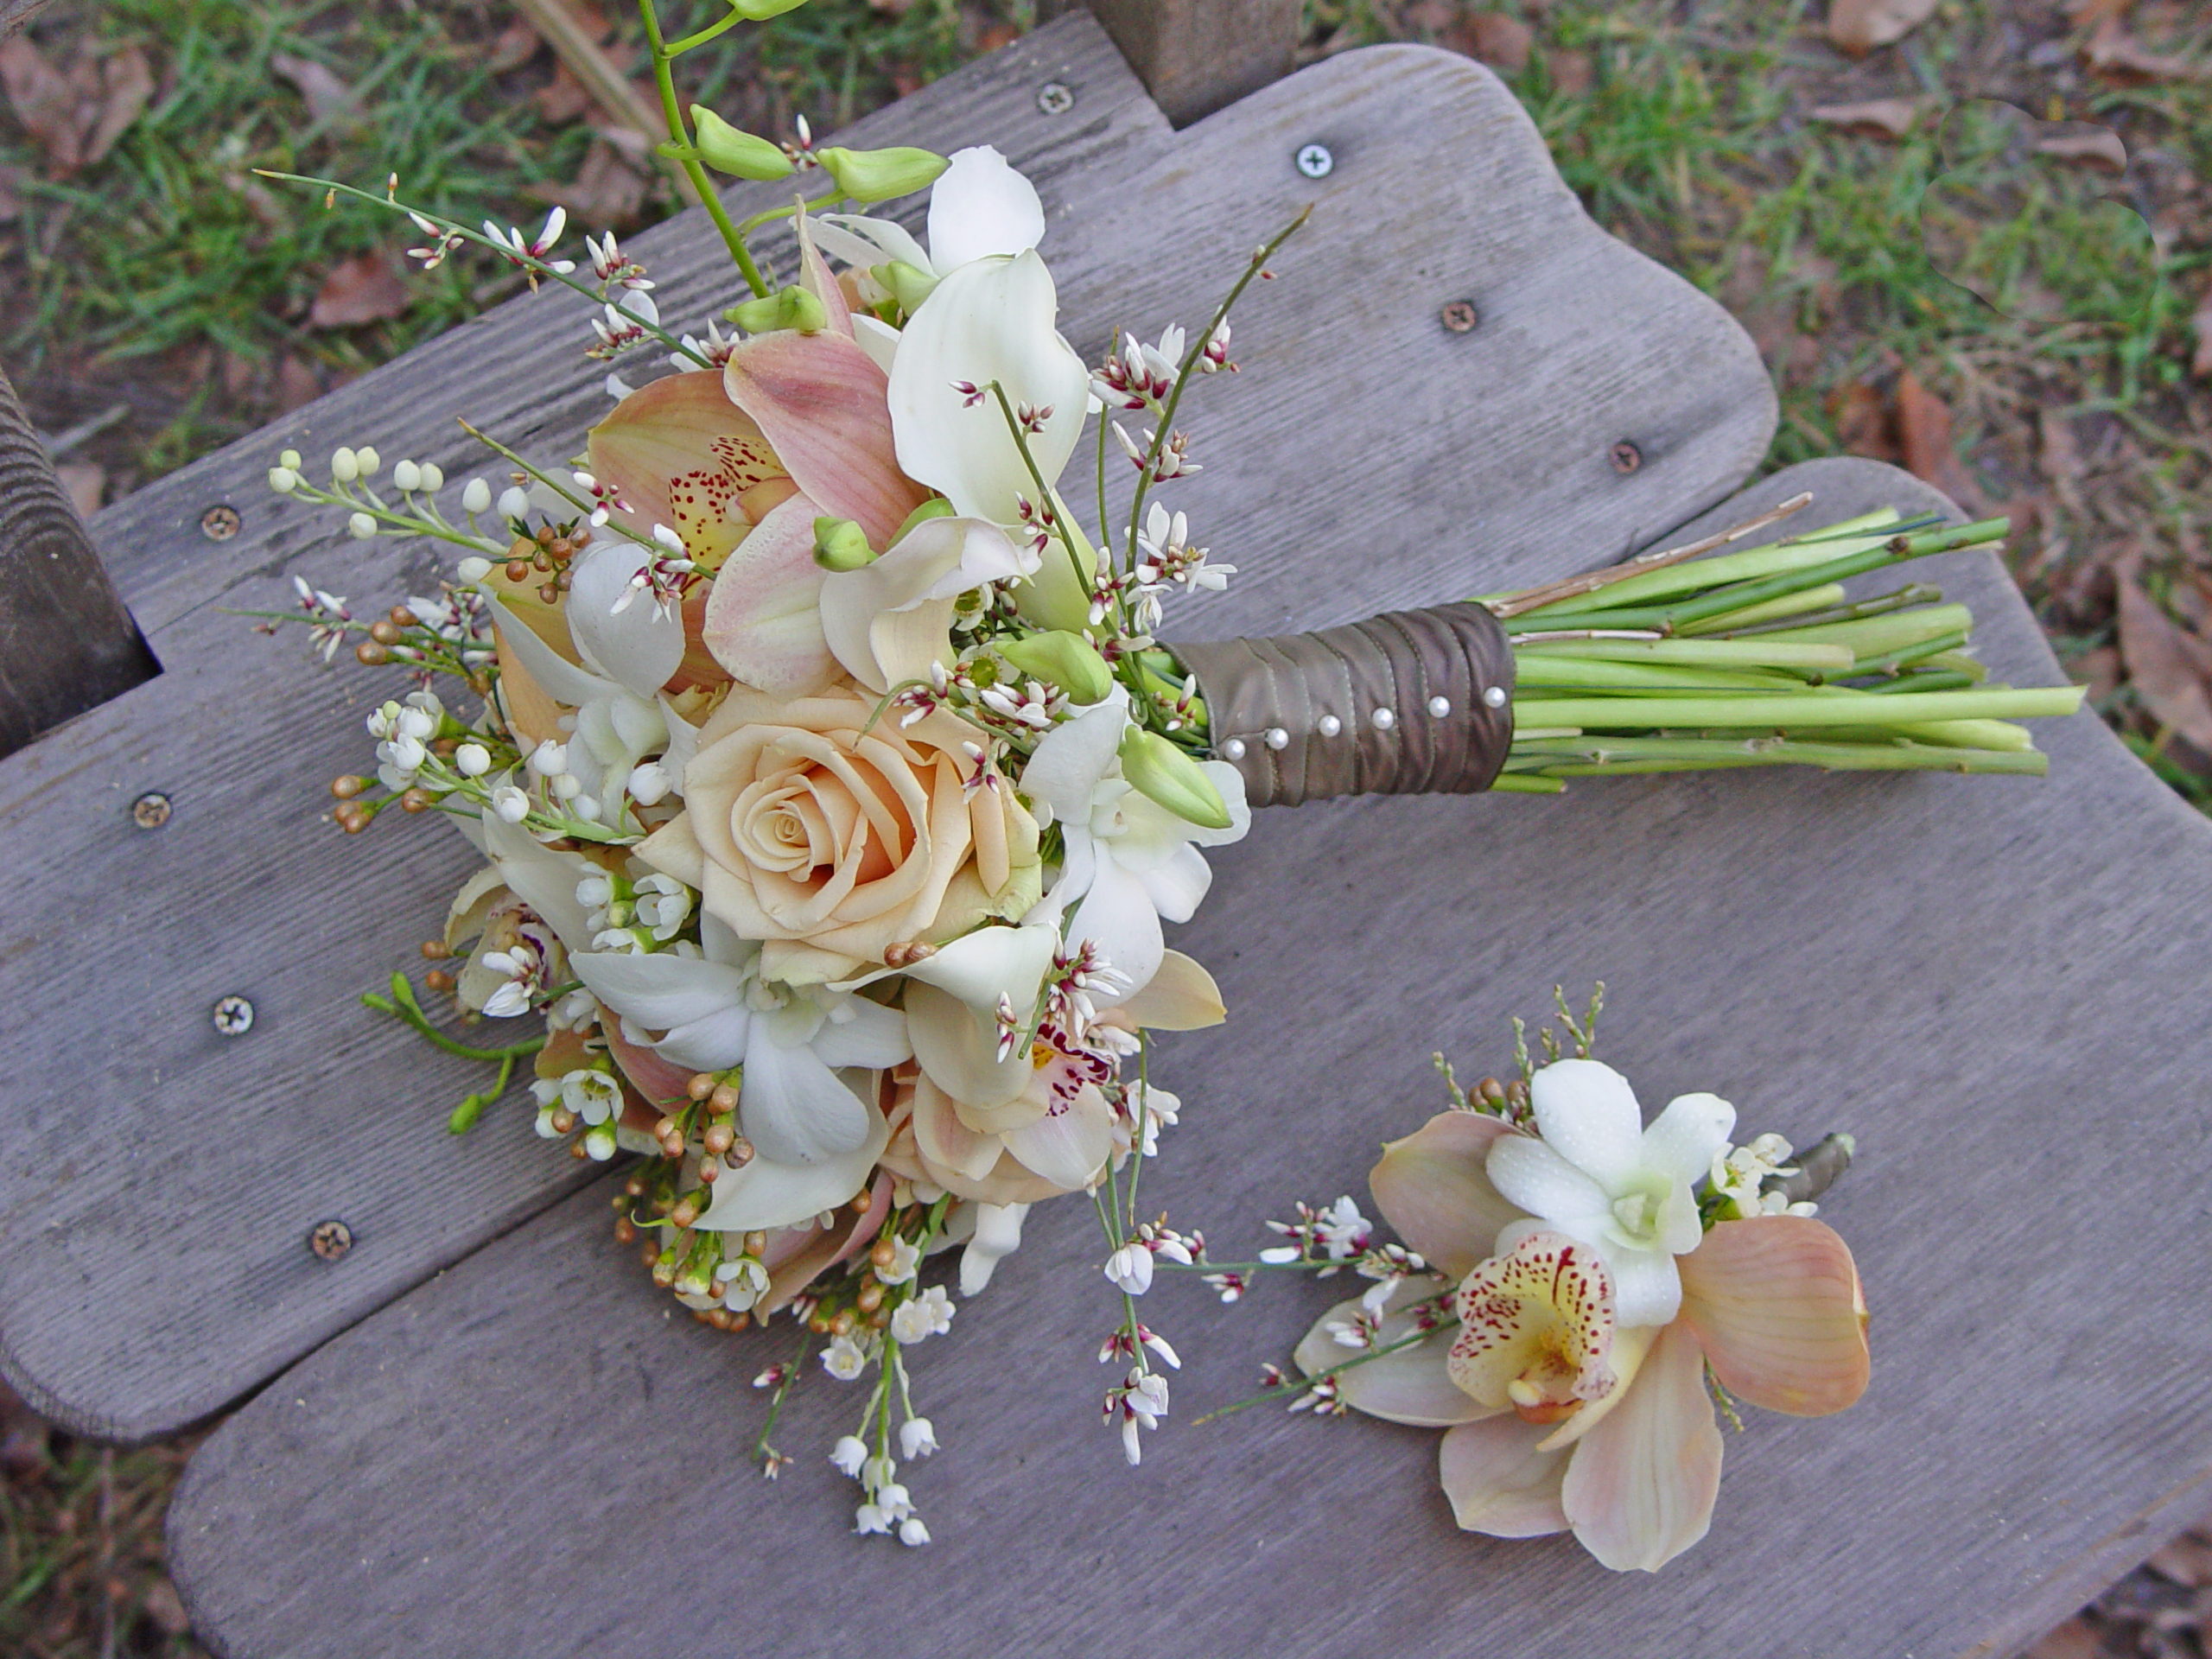 Bride Bouquets, Garden Wedding Flowers & Decor, Spring Wedding Flowers & Decor